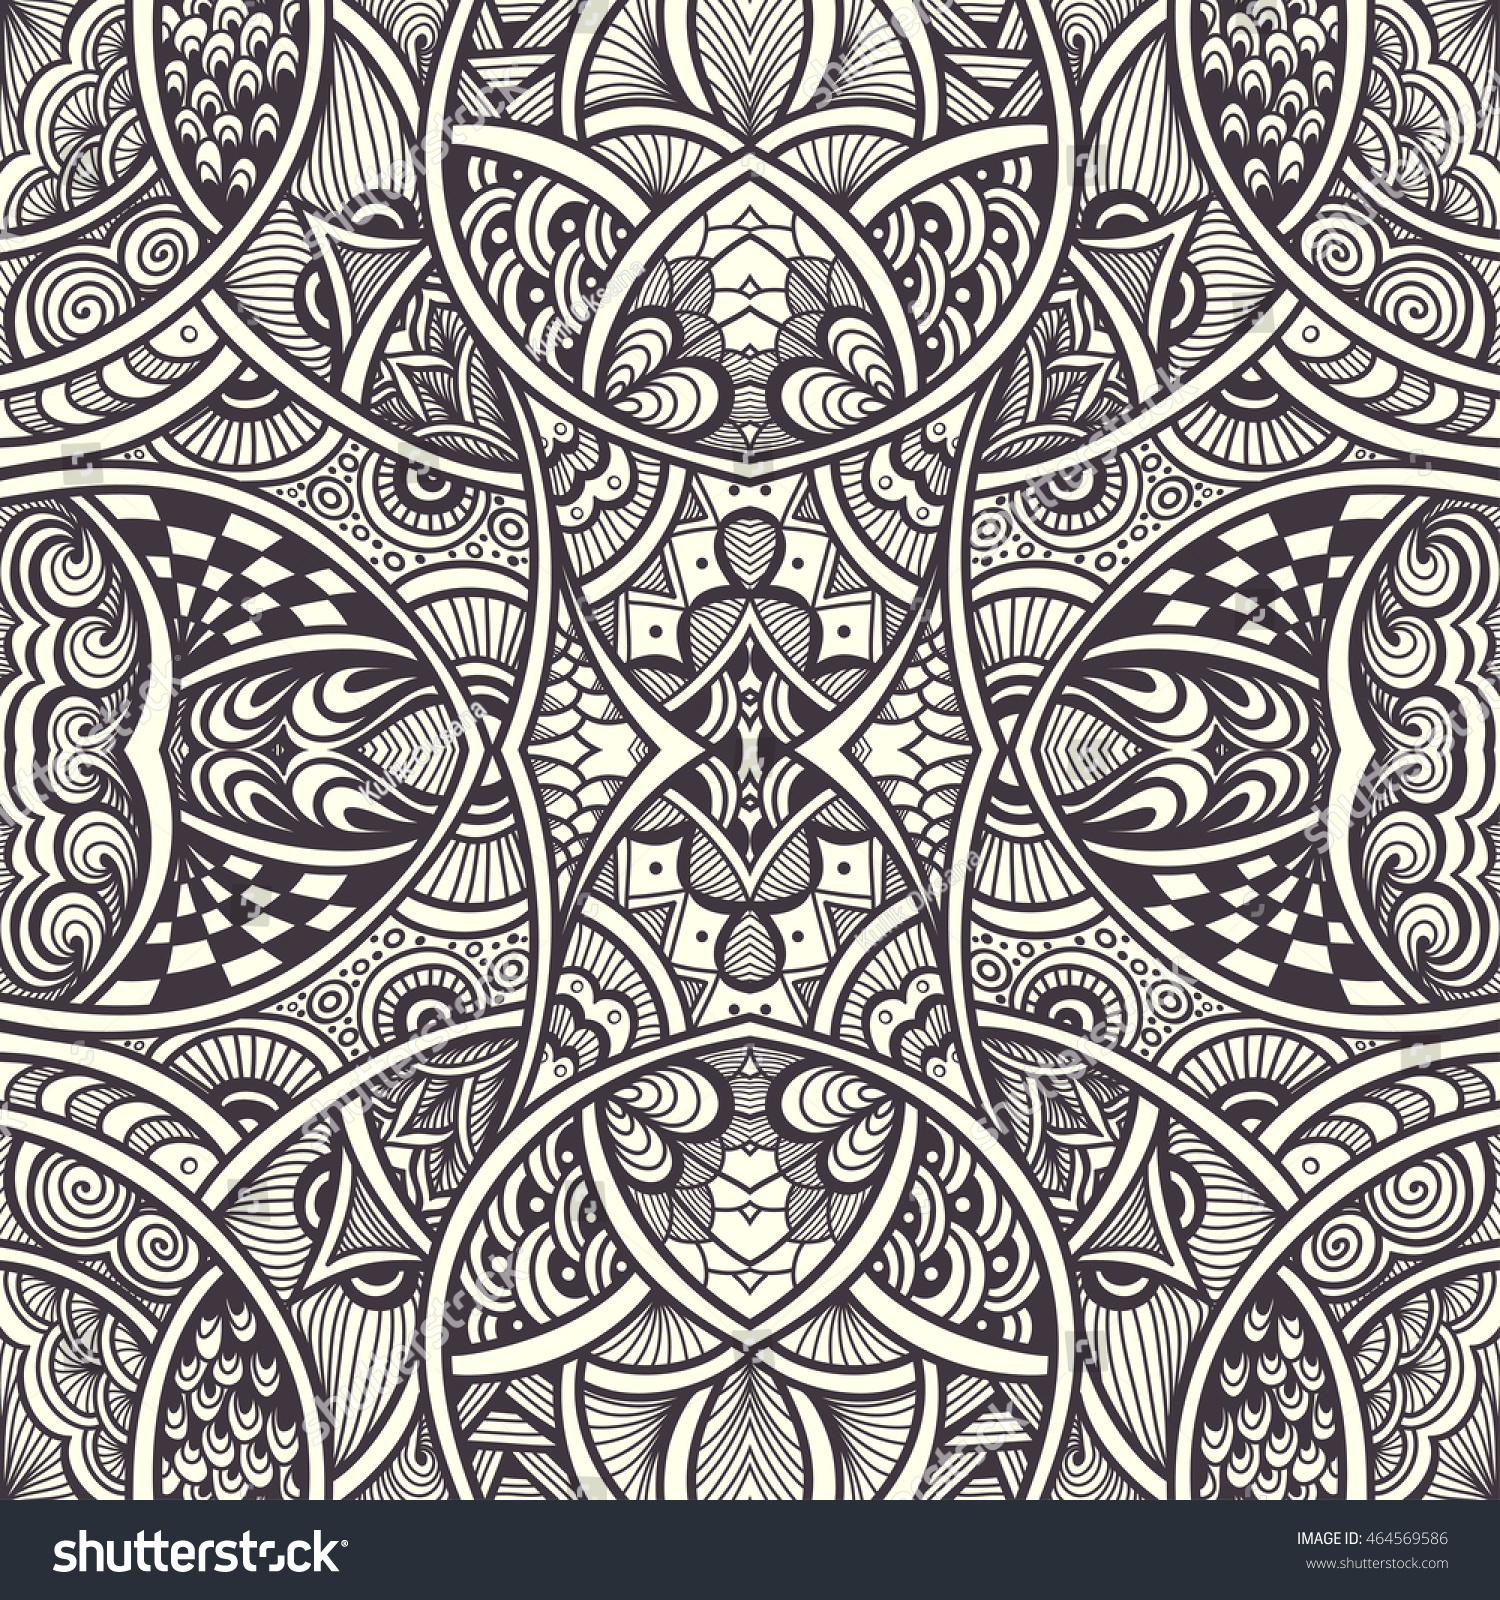 Abstract Background With Seamless Zen Doodle Or Tangle Pattern Black On White For Coloring Page